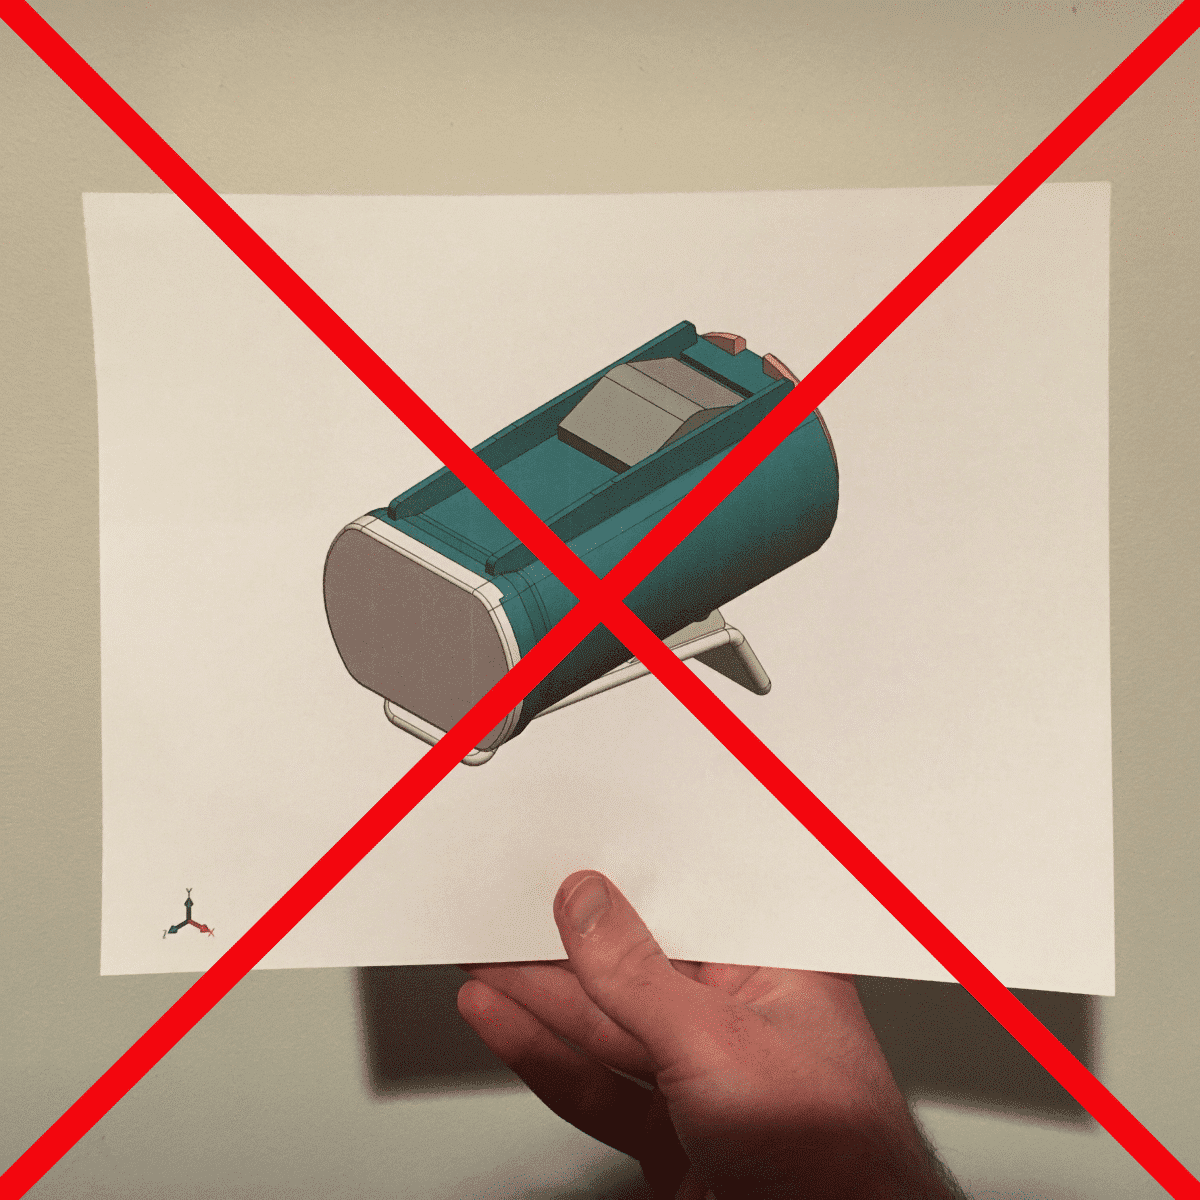 Printed assembly